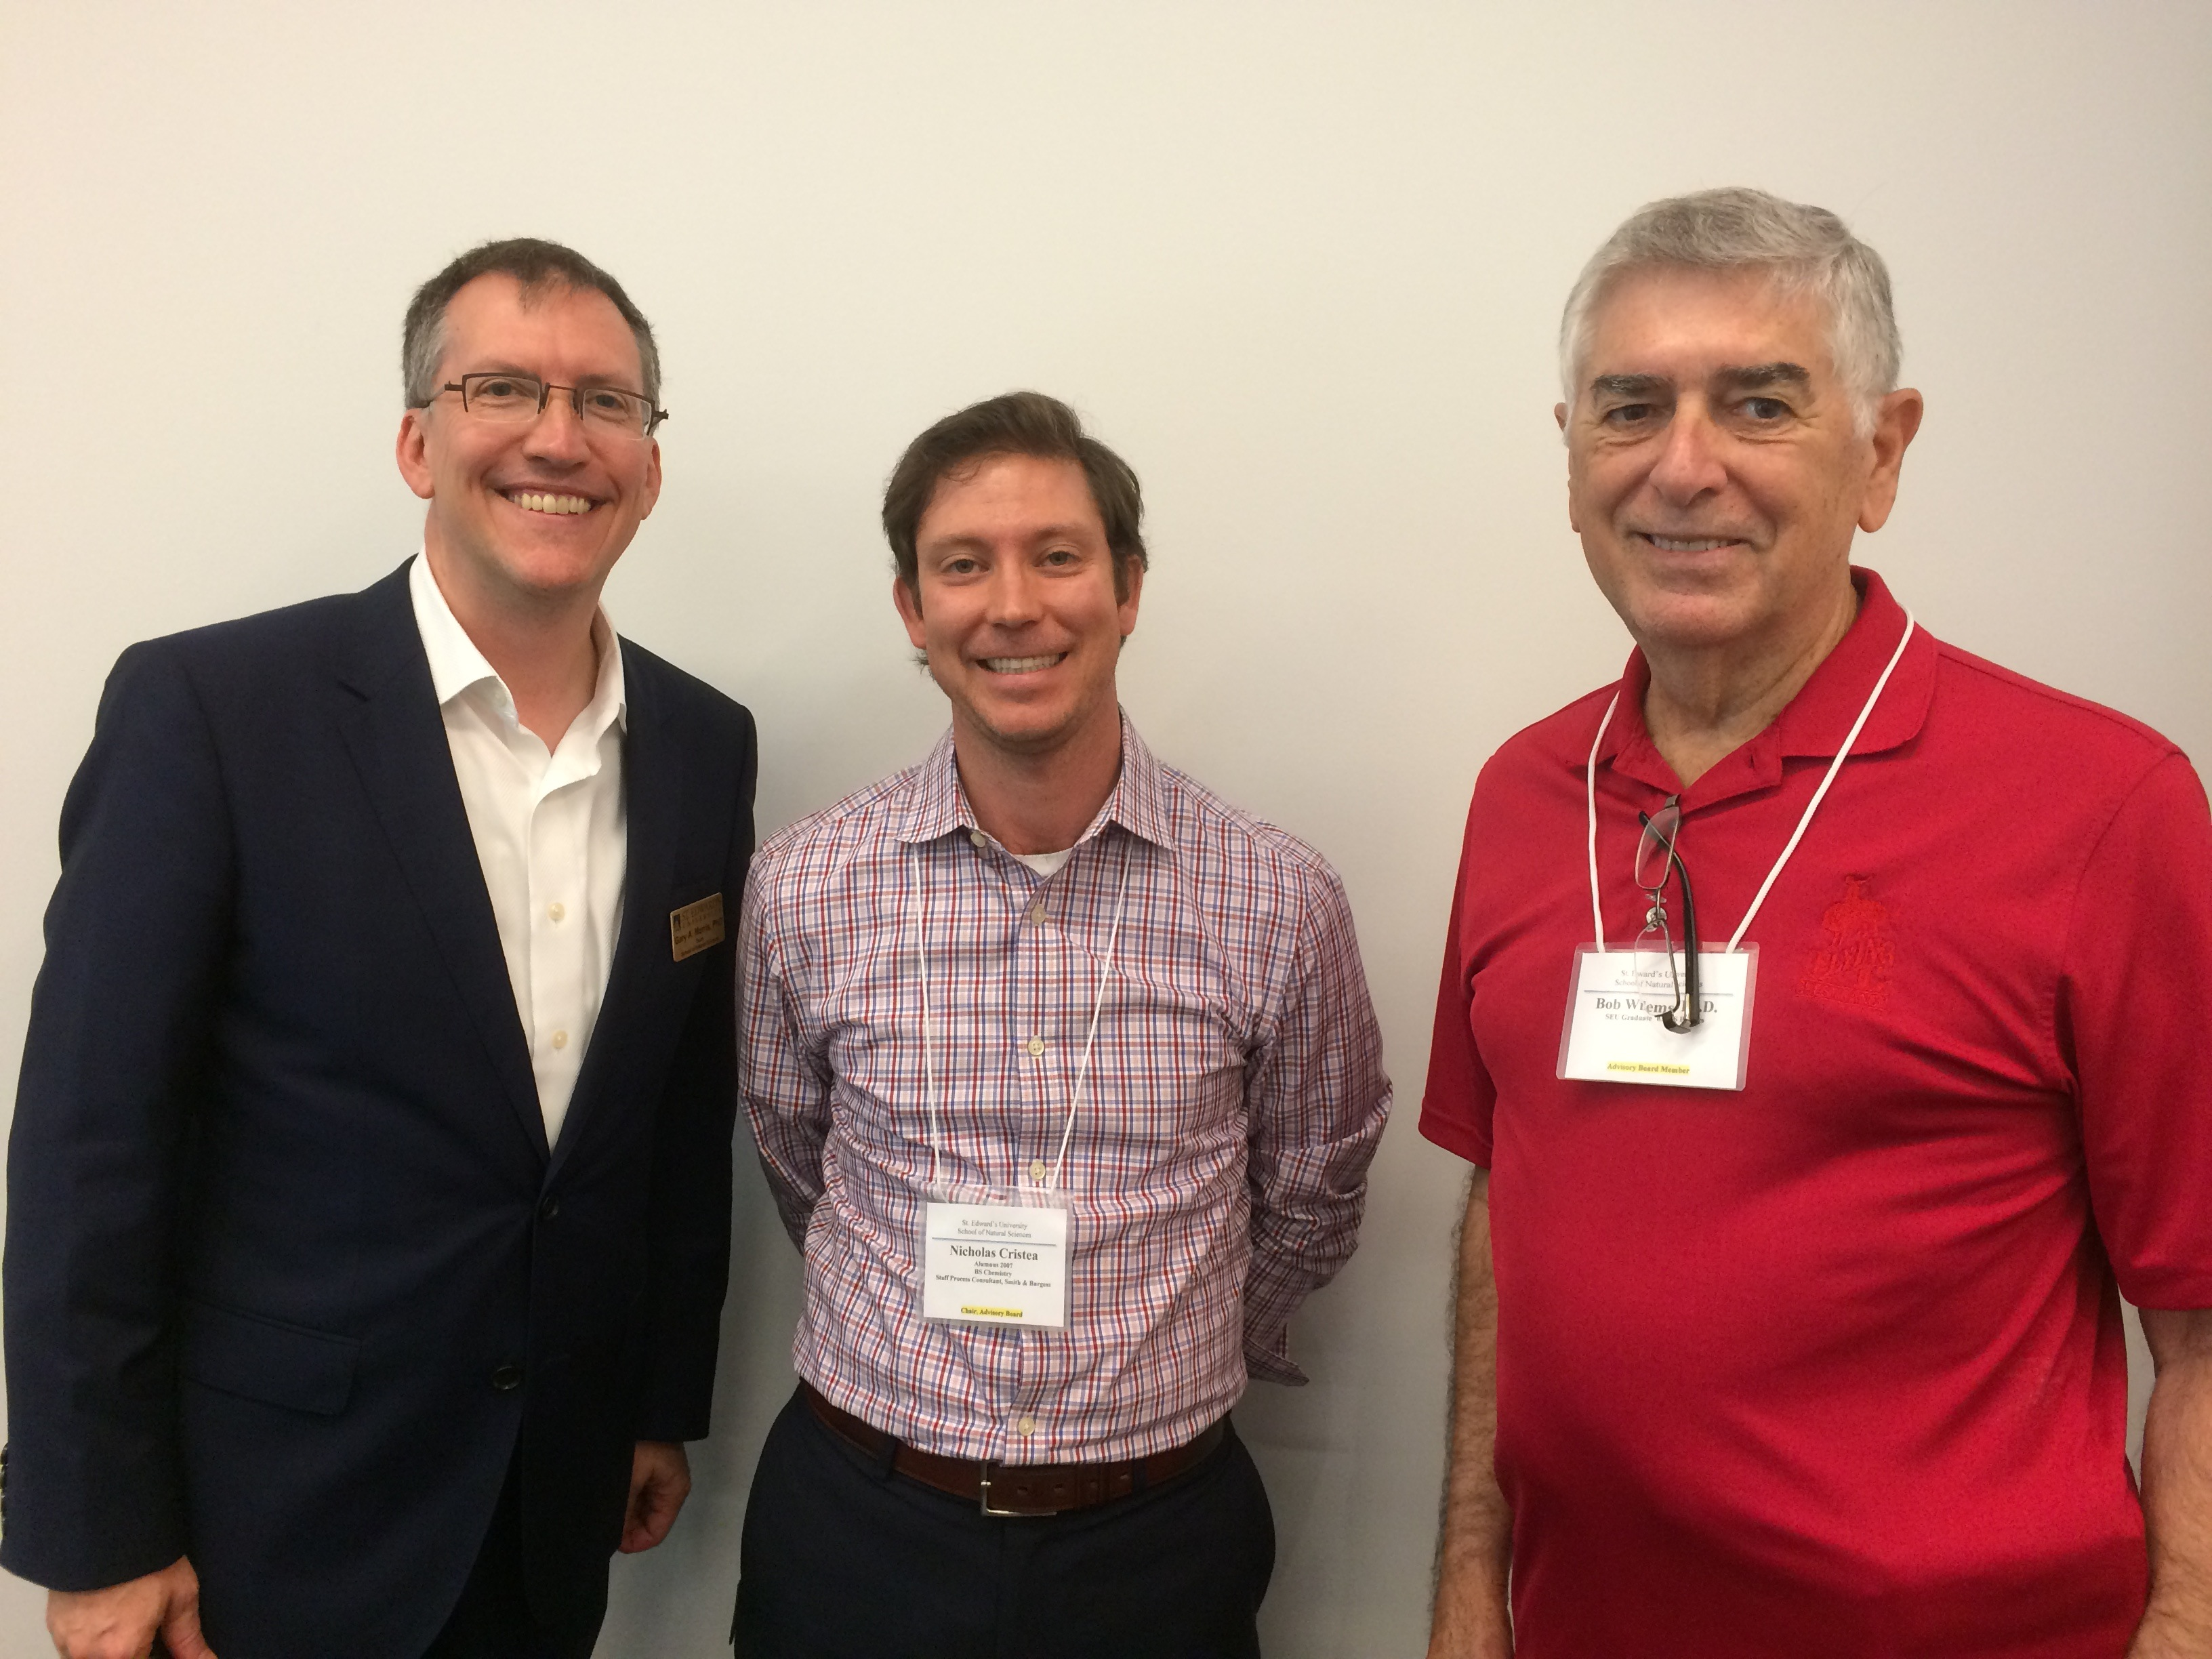 Bob Wilems (right) hands off leadership of the NSCI Advisory Board to Nick Cristea (center), with Dean Gary A. Morris (left).